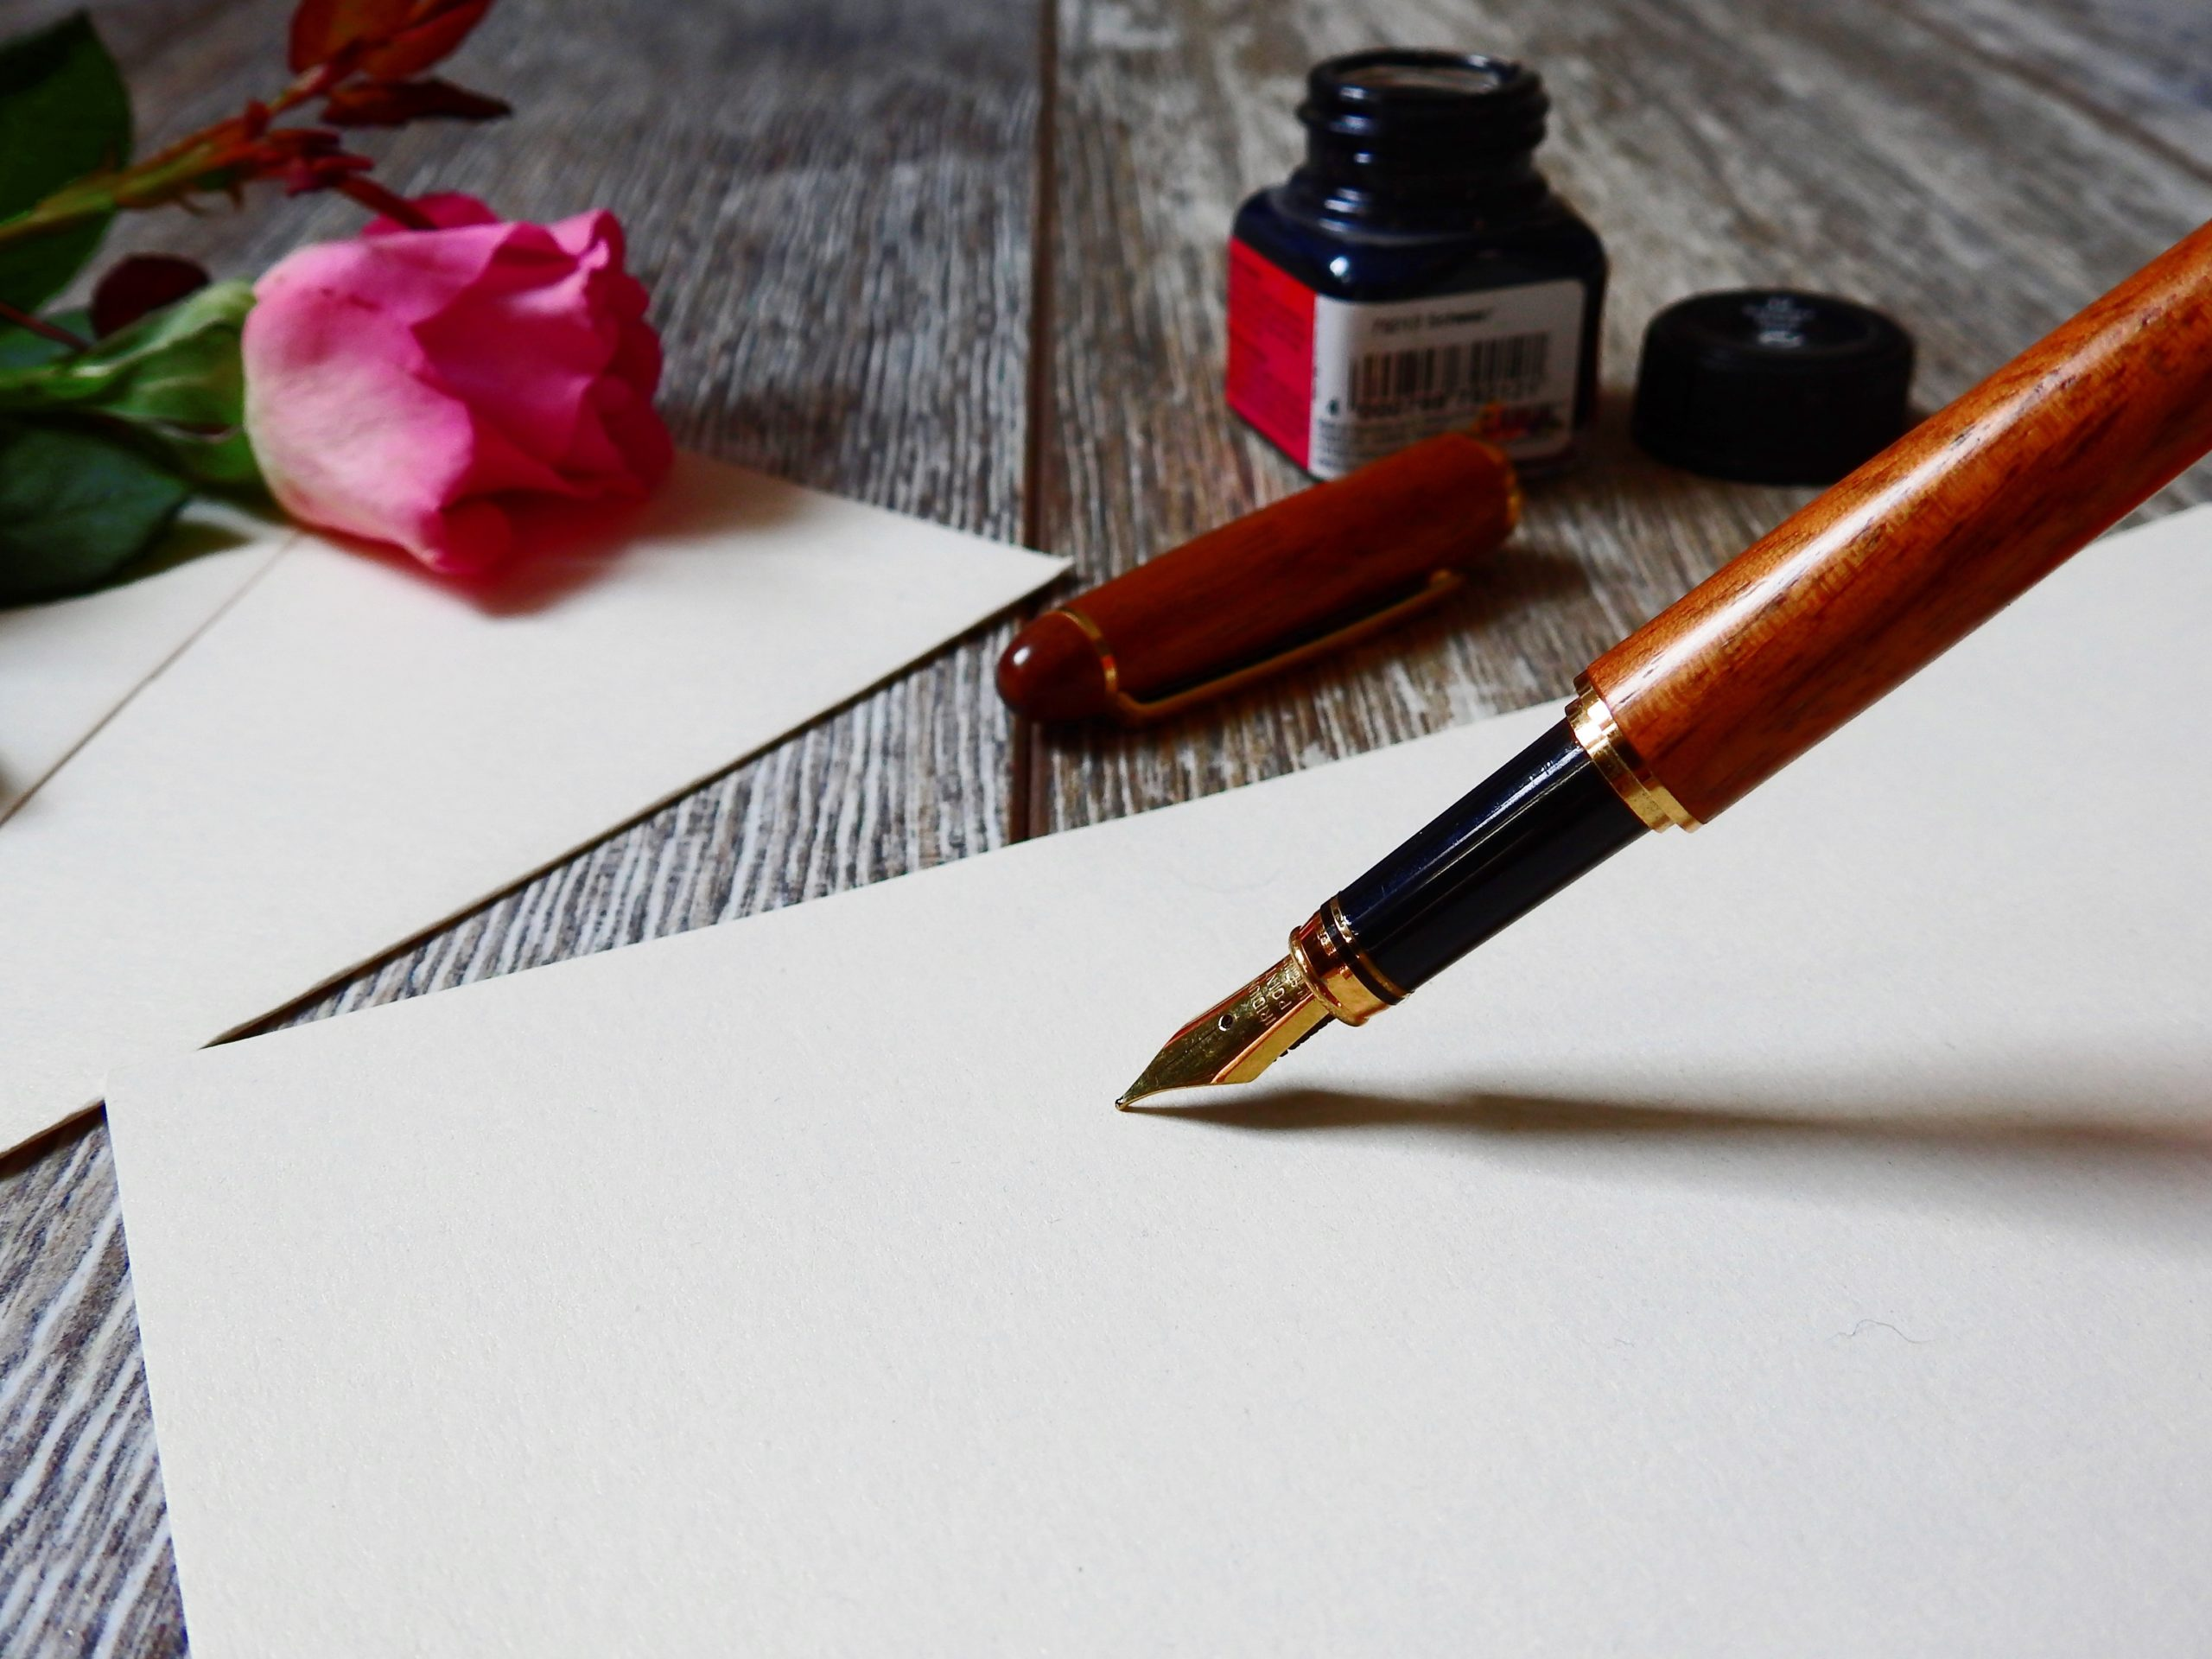 fountain Pen ink writing paper scaled 劇本對不對?|原子散文